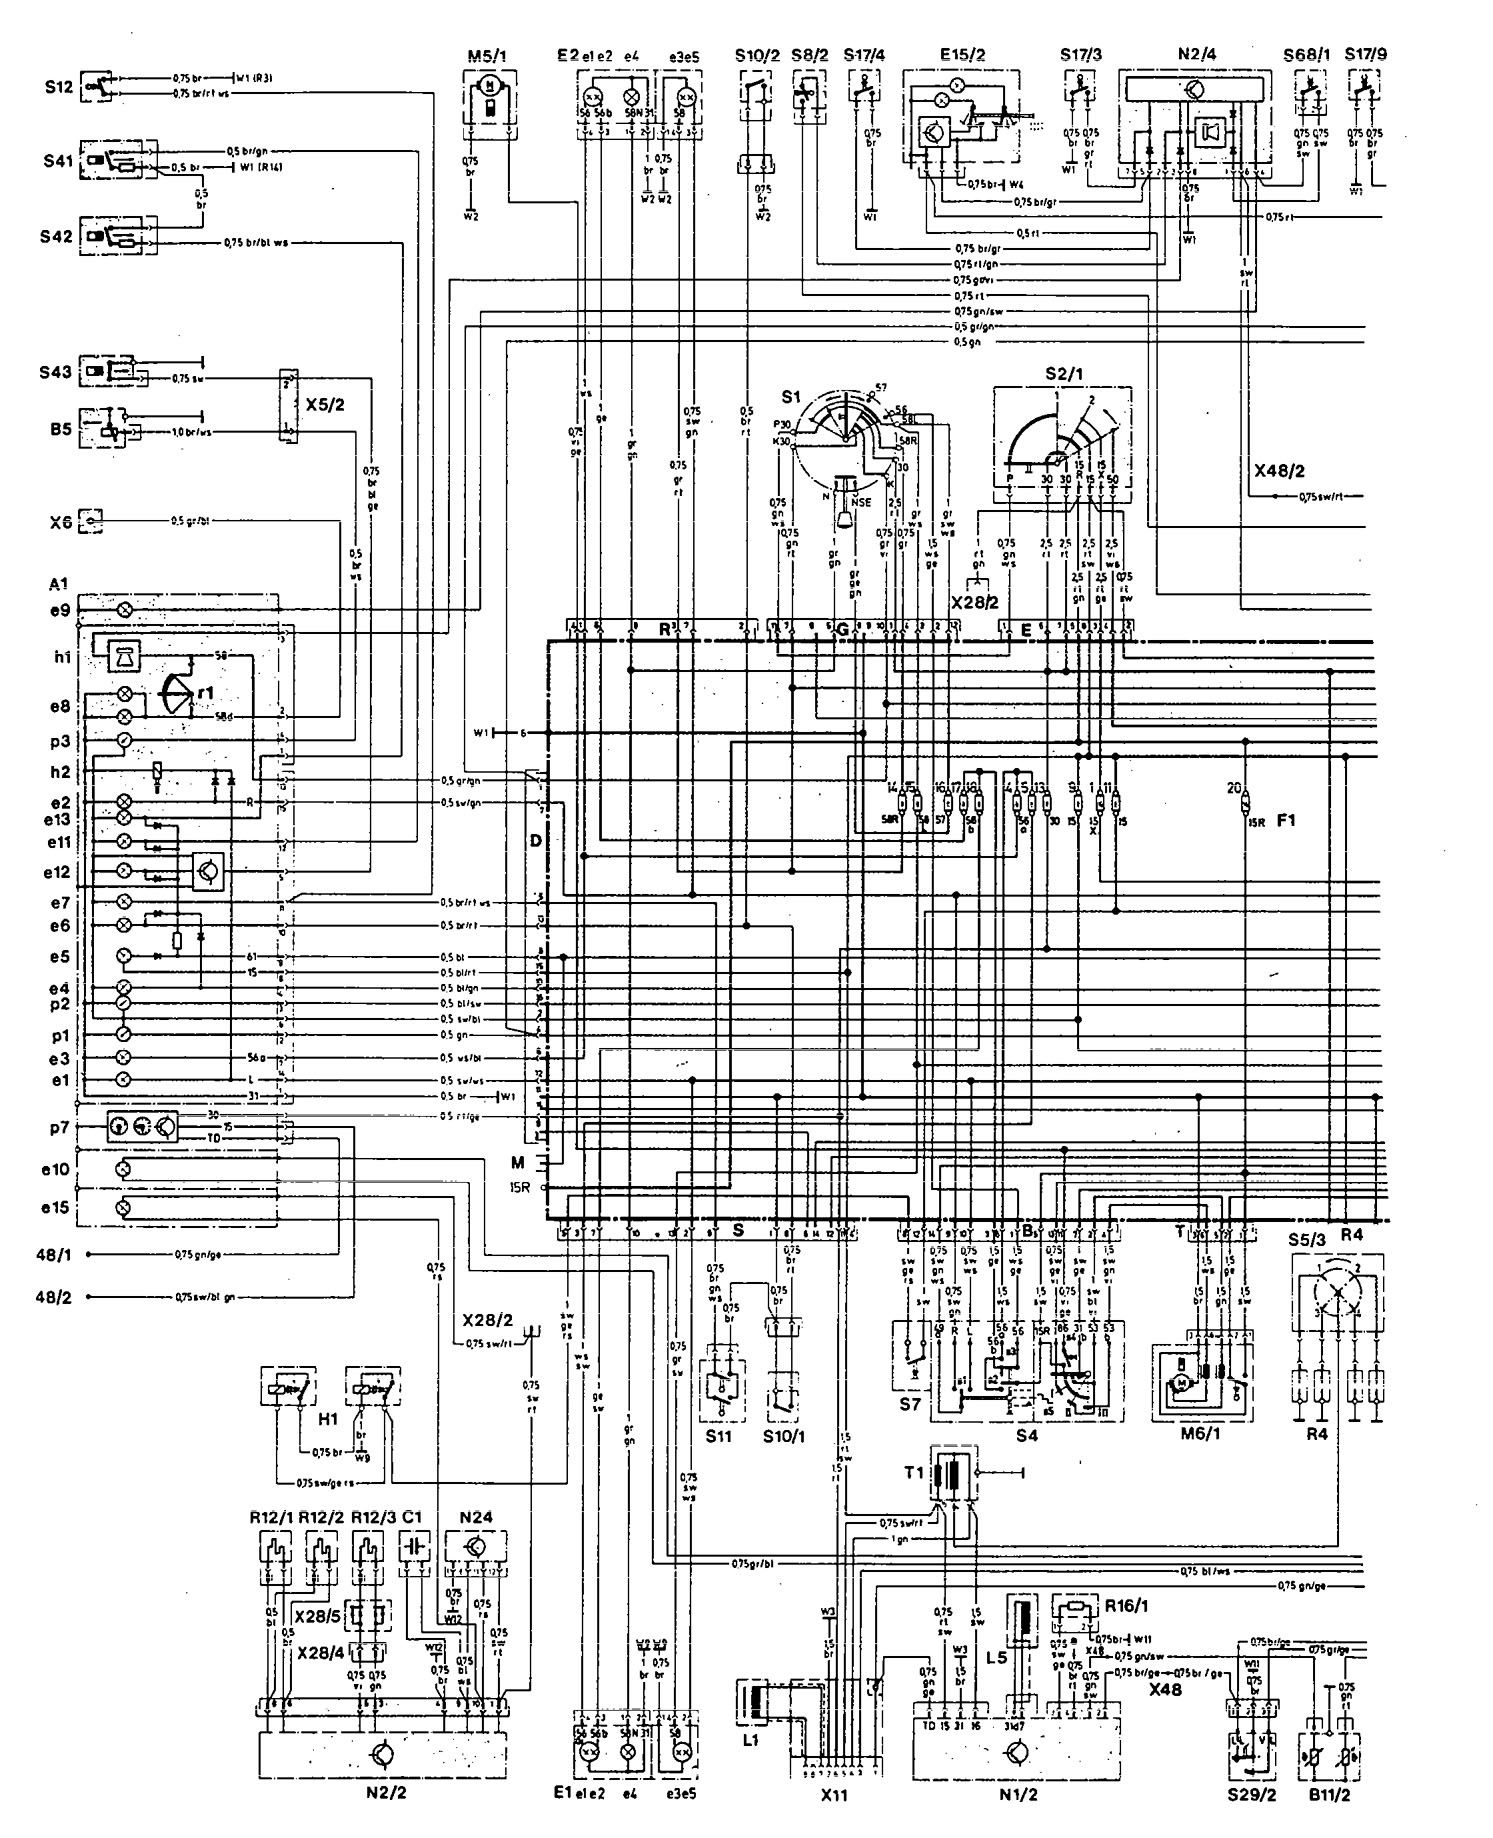 a cdi ignition wiring diagram for 185s 8e5c4 mercedes benz atego wiring diagram wiring library  8e5c4 mercedes benz atego wiring